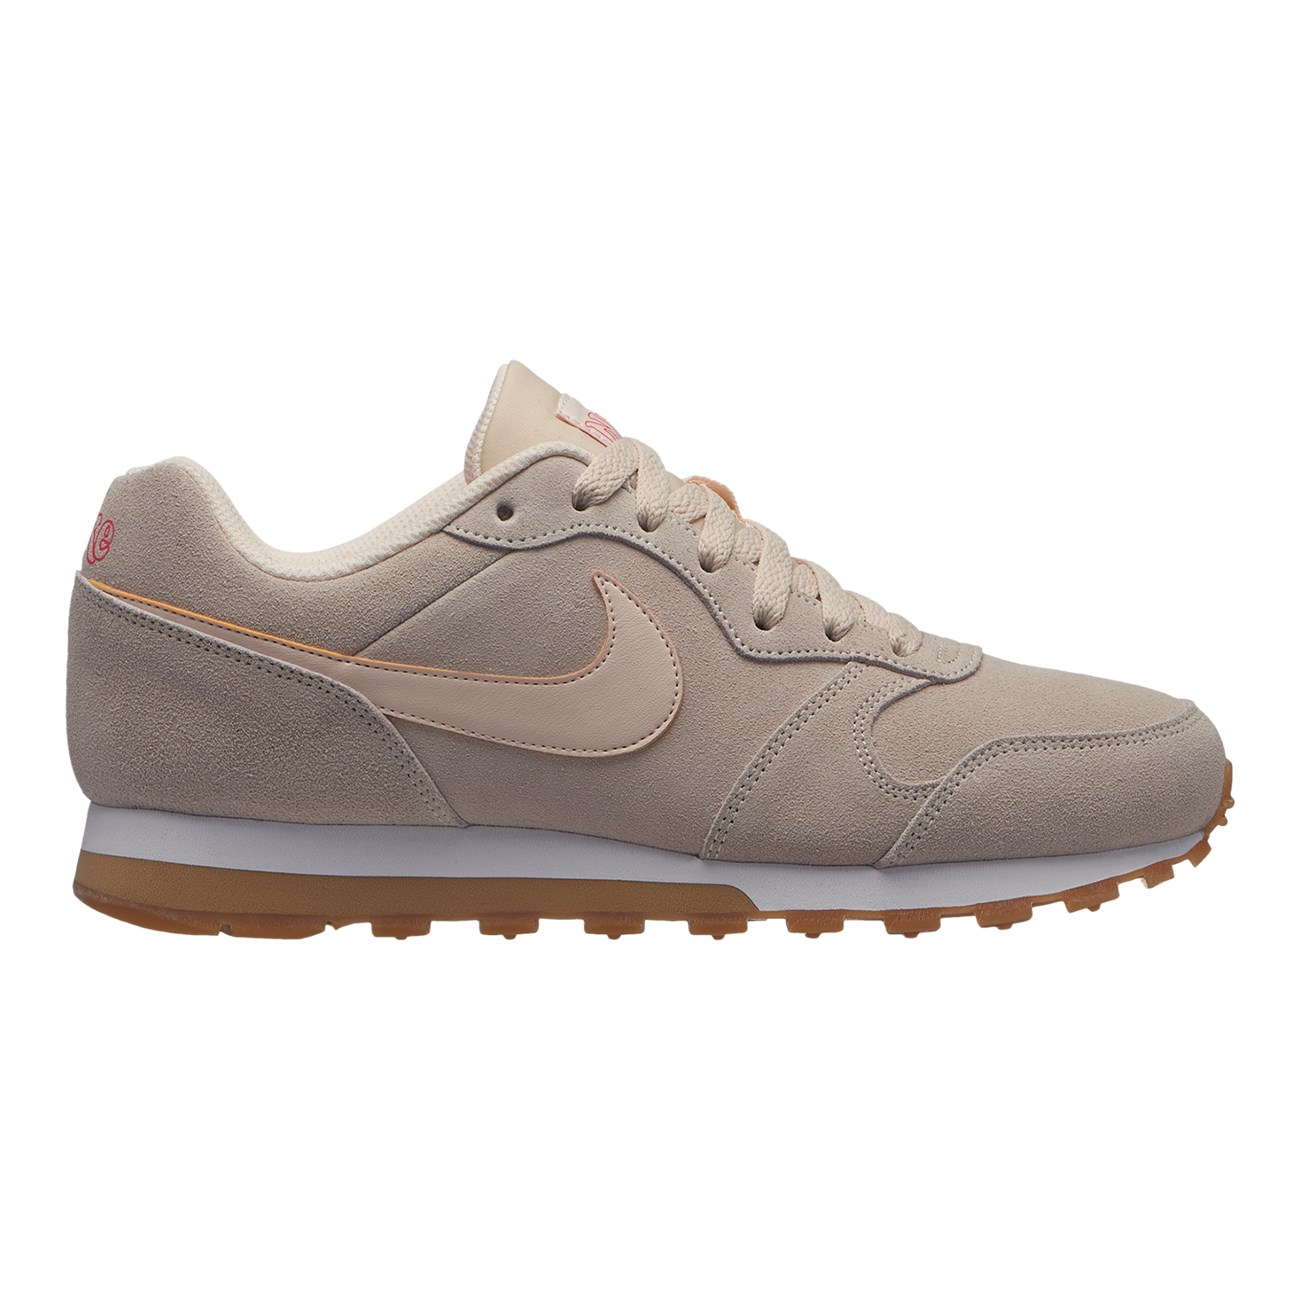 NIKE MD RUNNER 2 SE W   Sportstyle Παπούτσια  65f3bcbae19